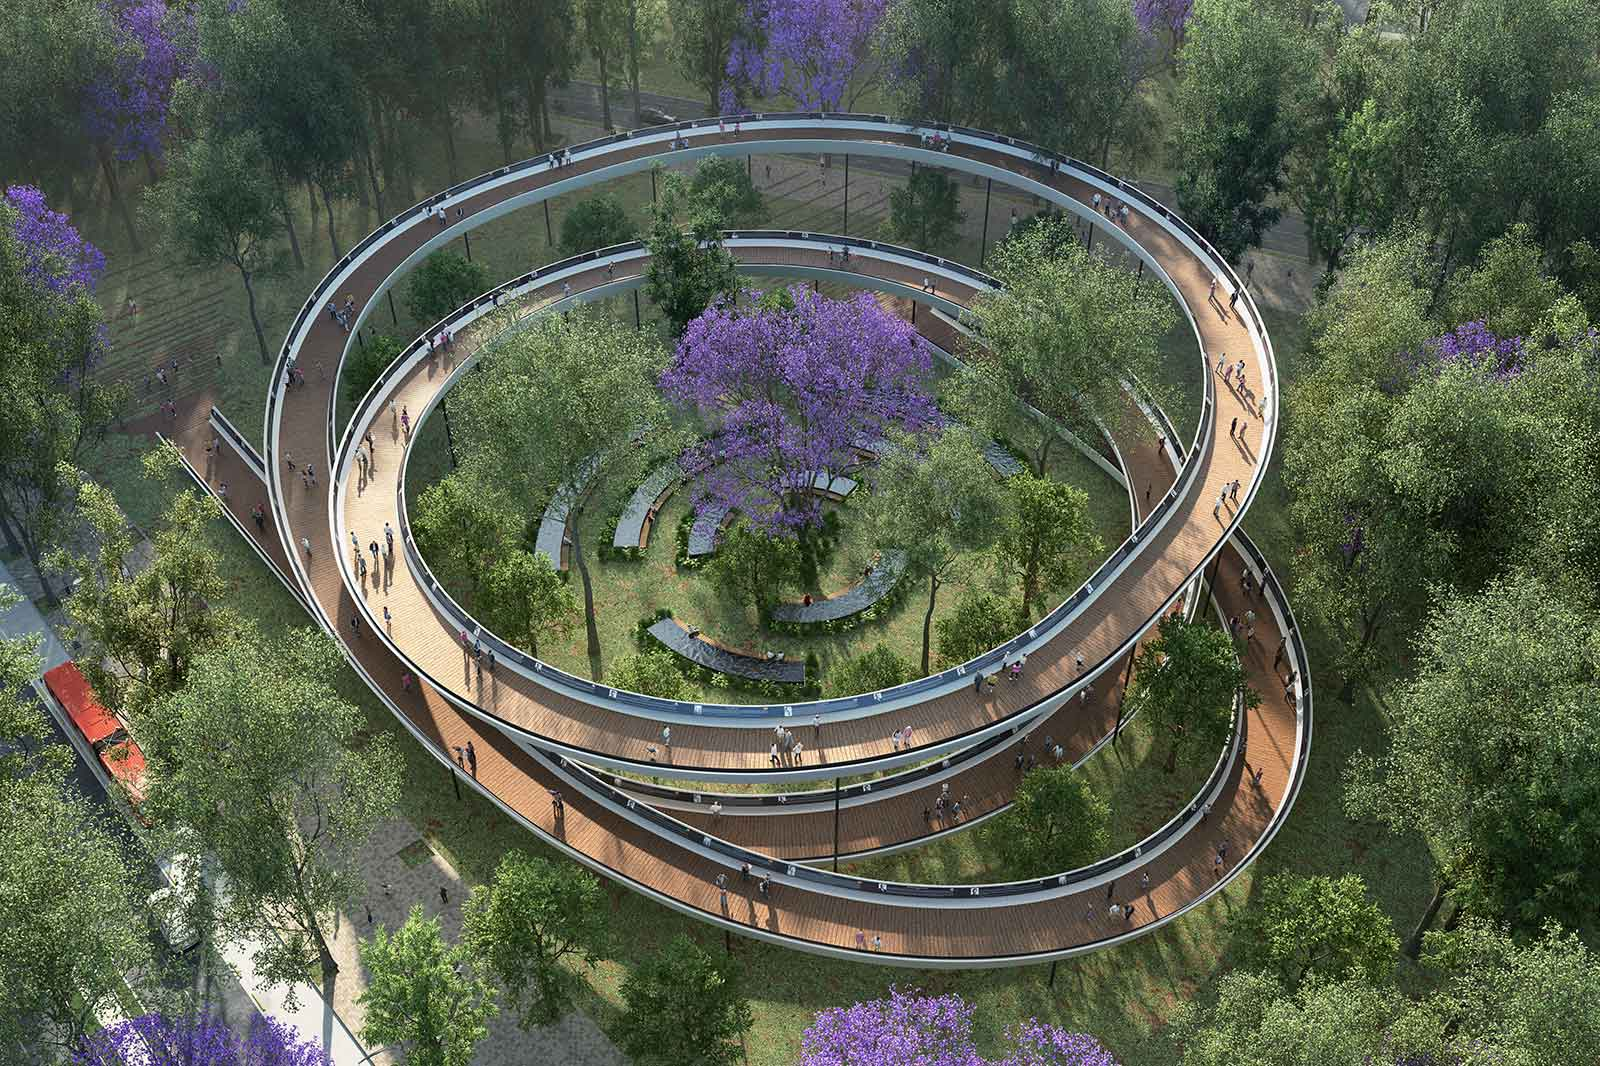 The-Spiral-of-Silence-memorial-05